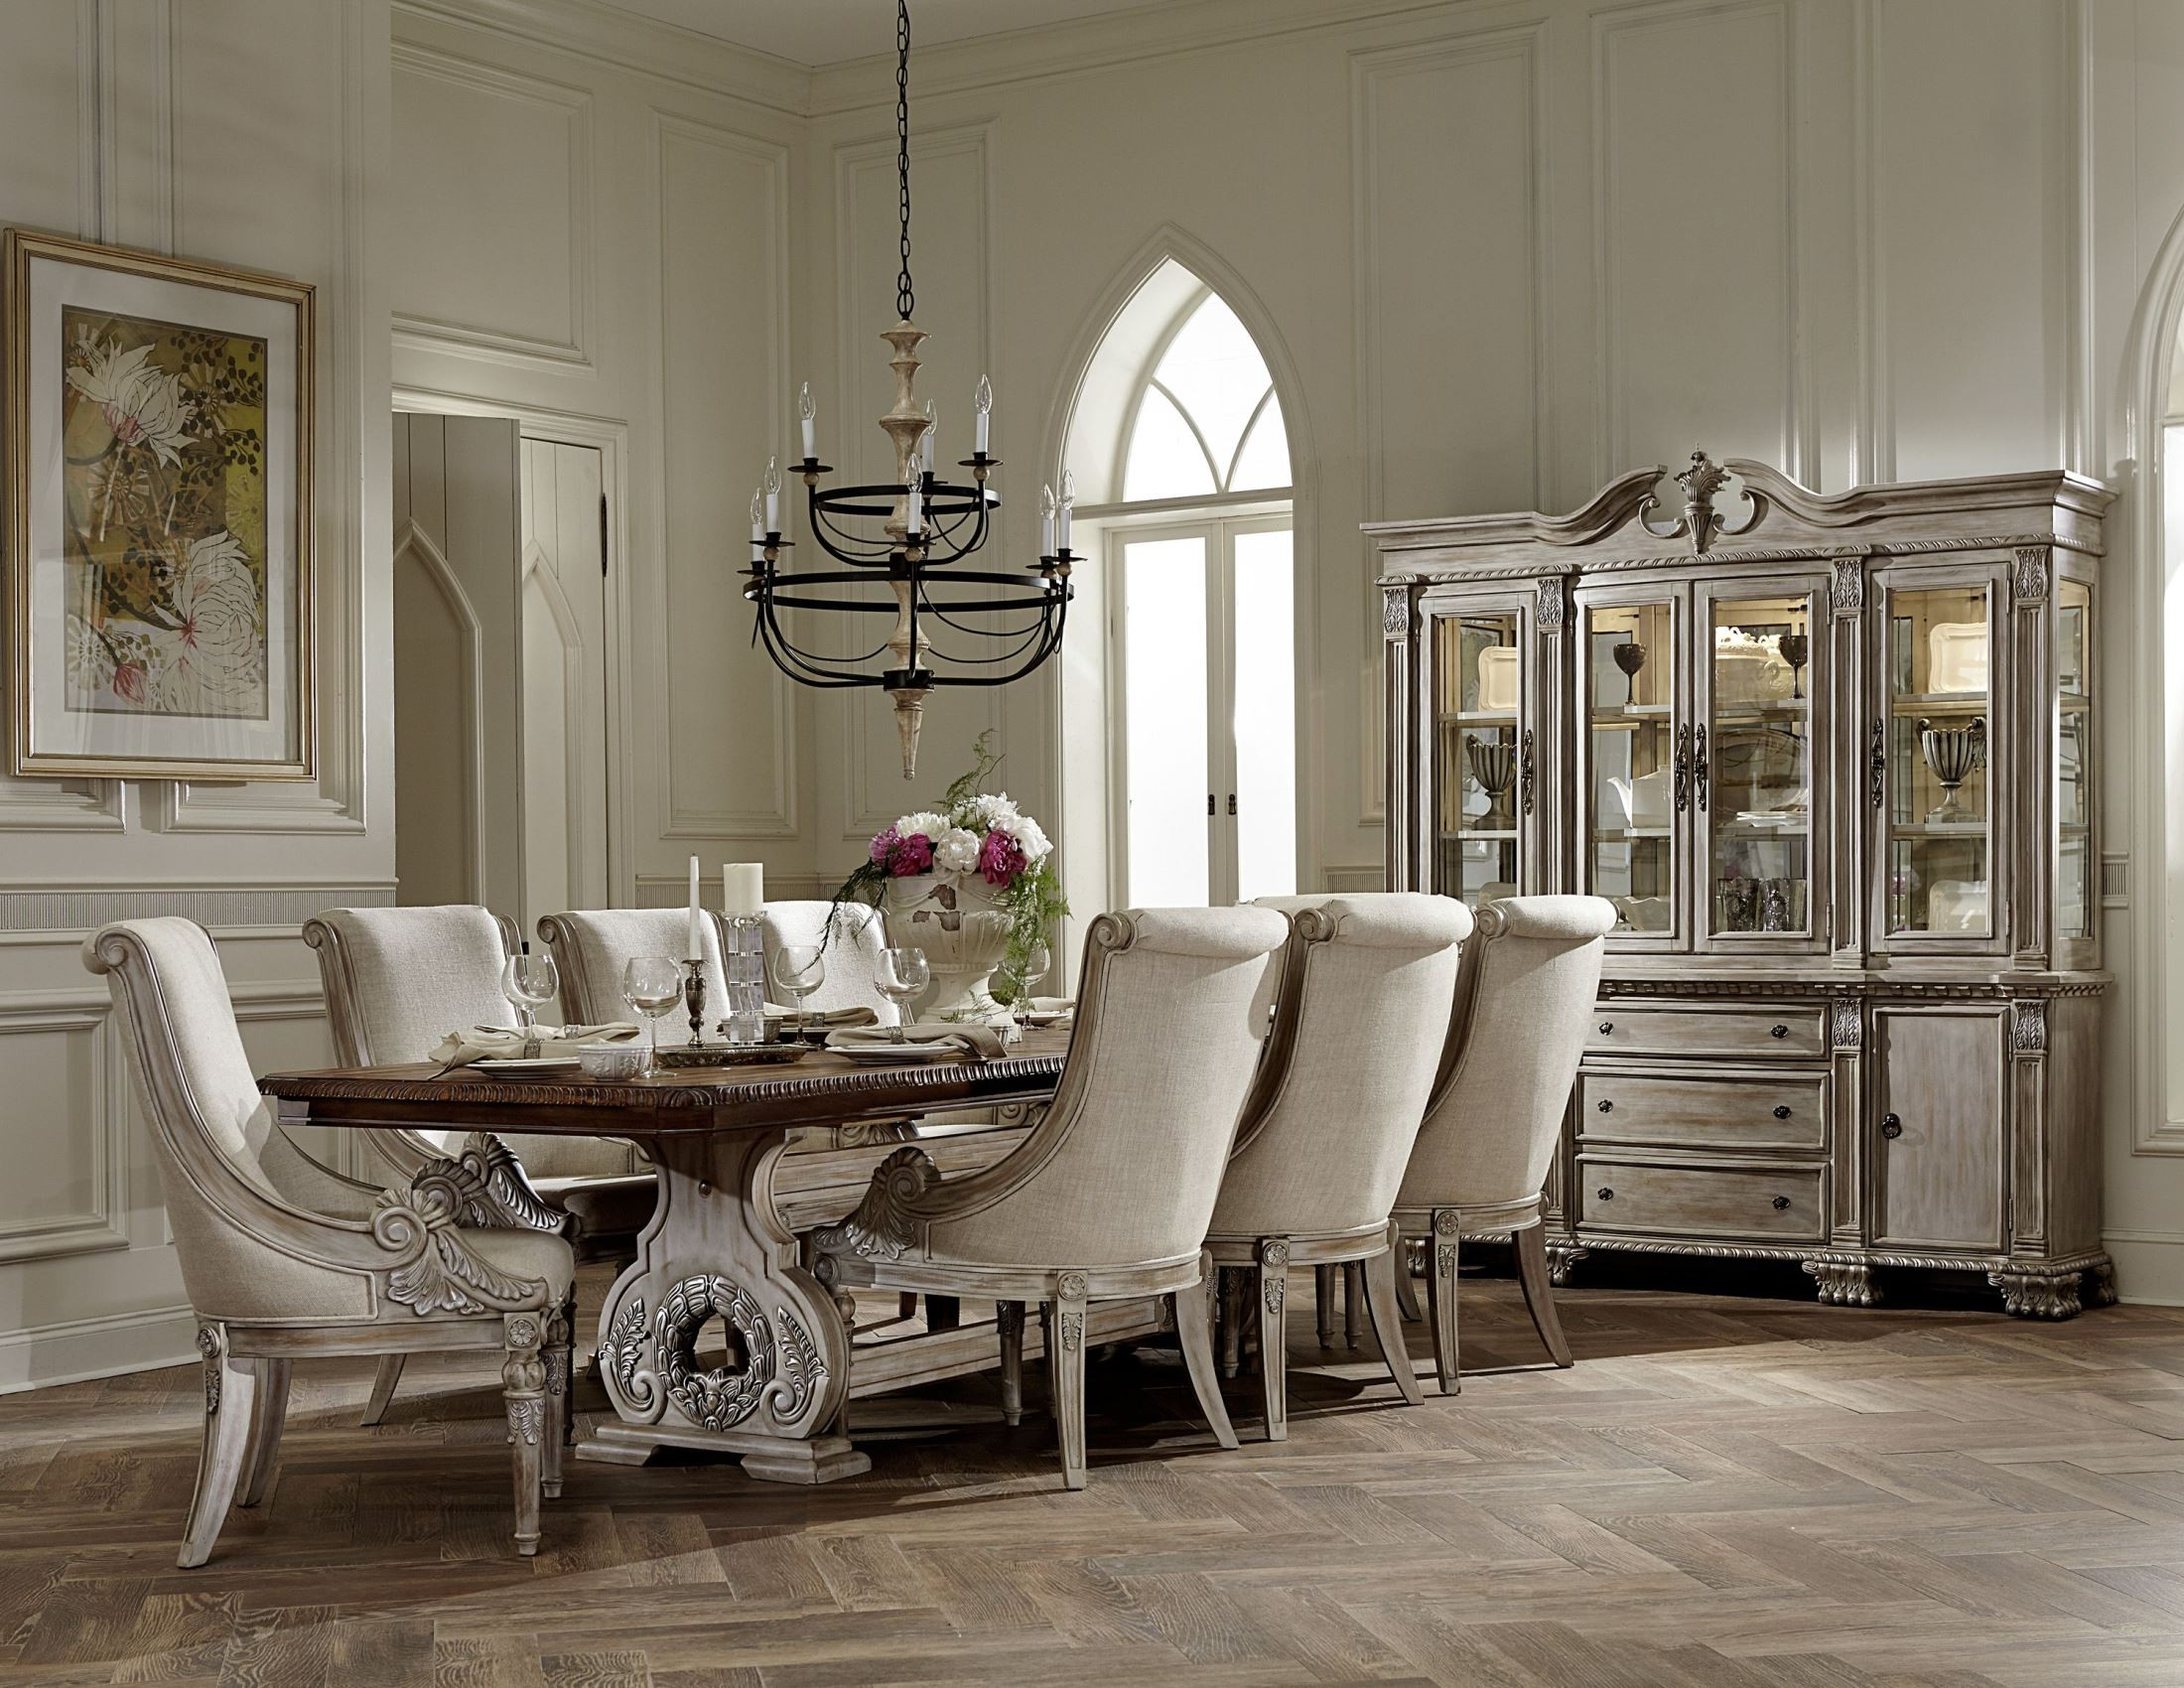 Marvelous ... Dining Room Set. 1669347. 774118